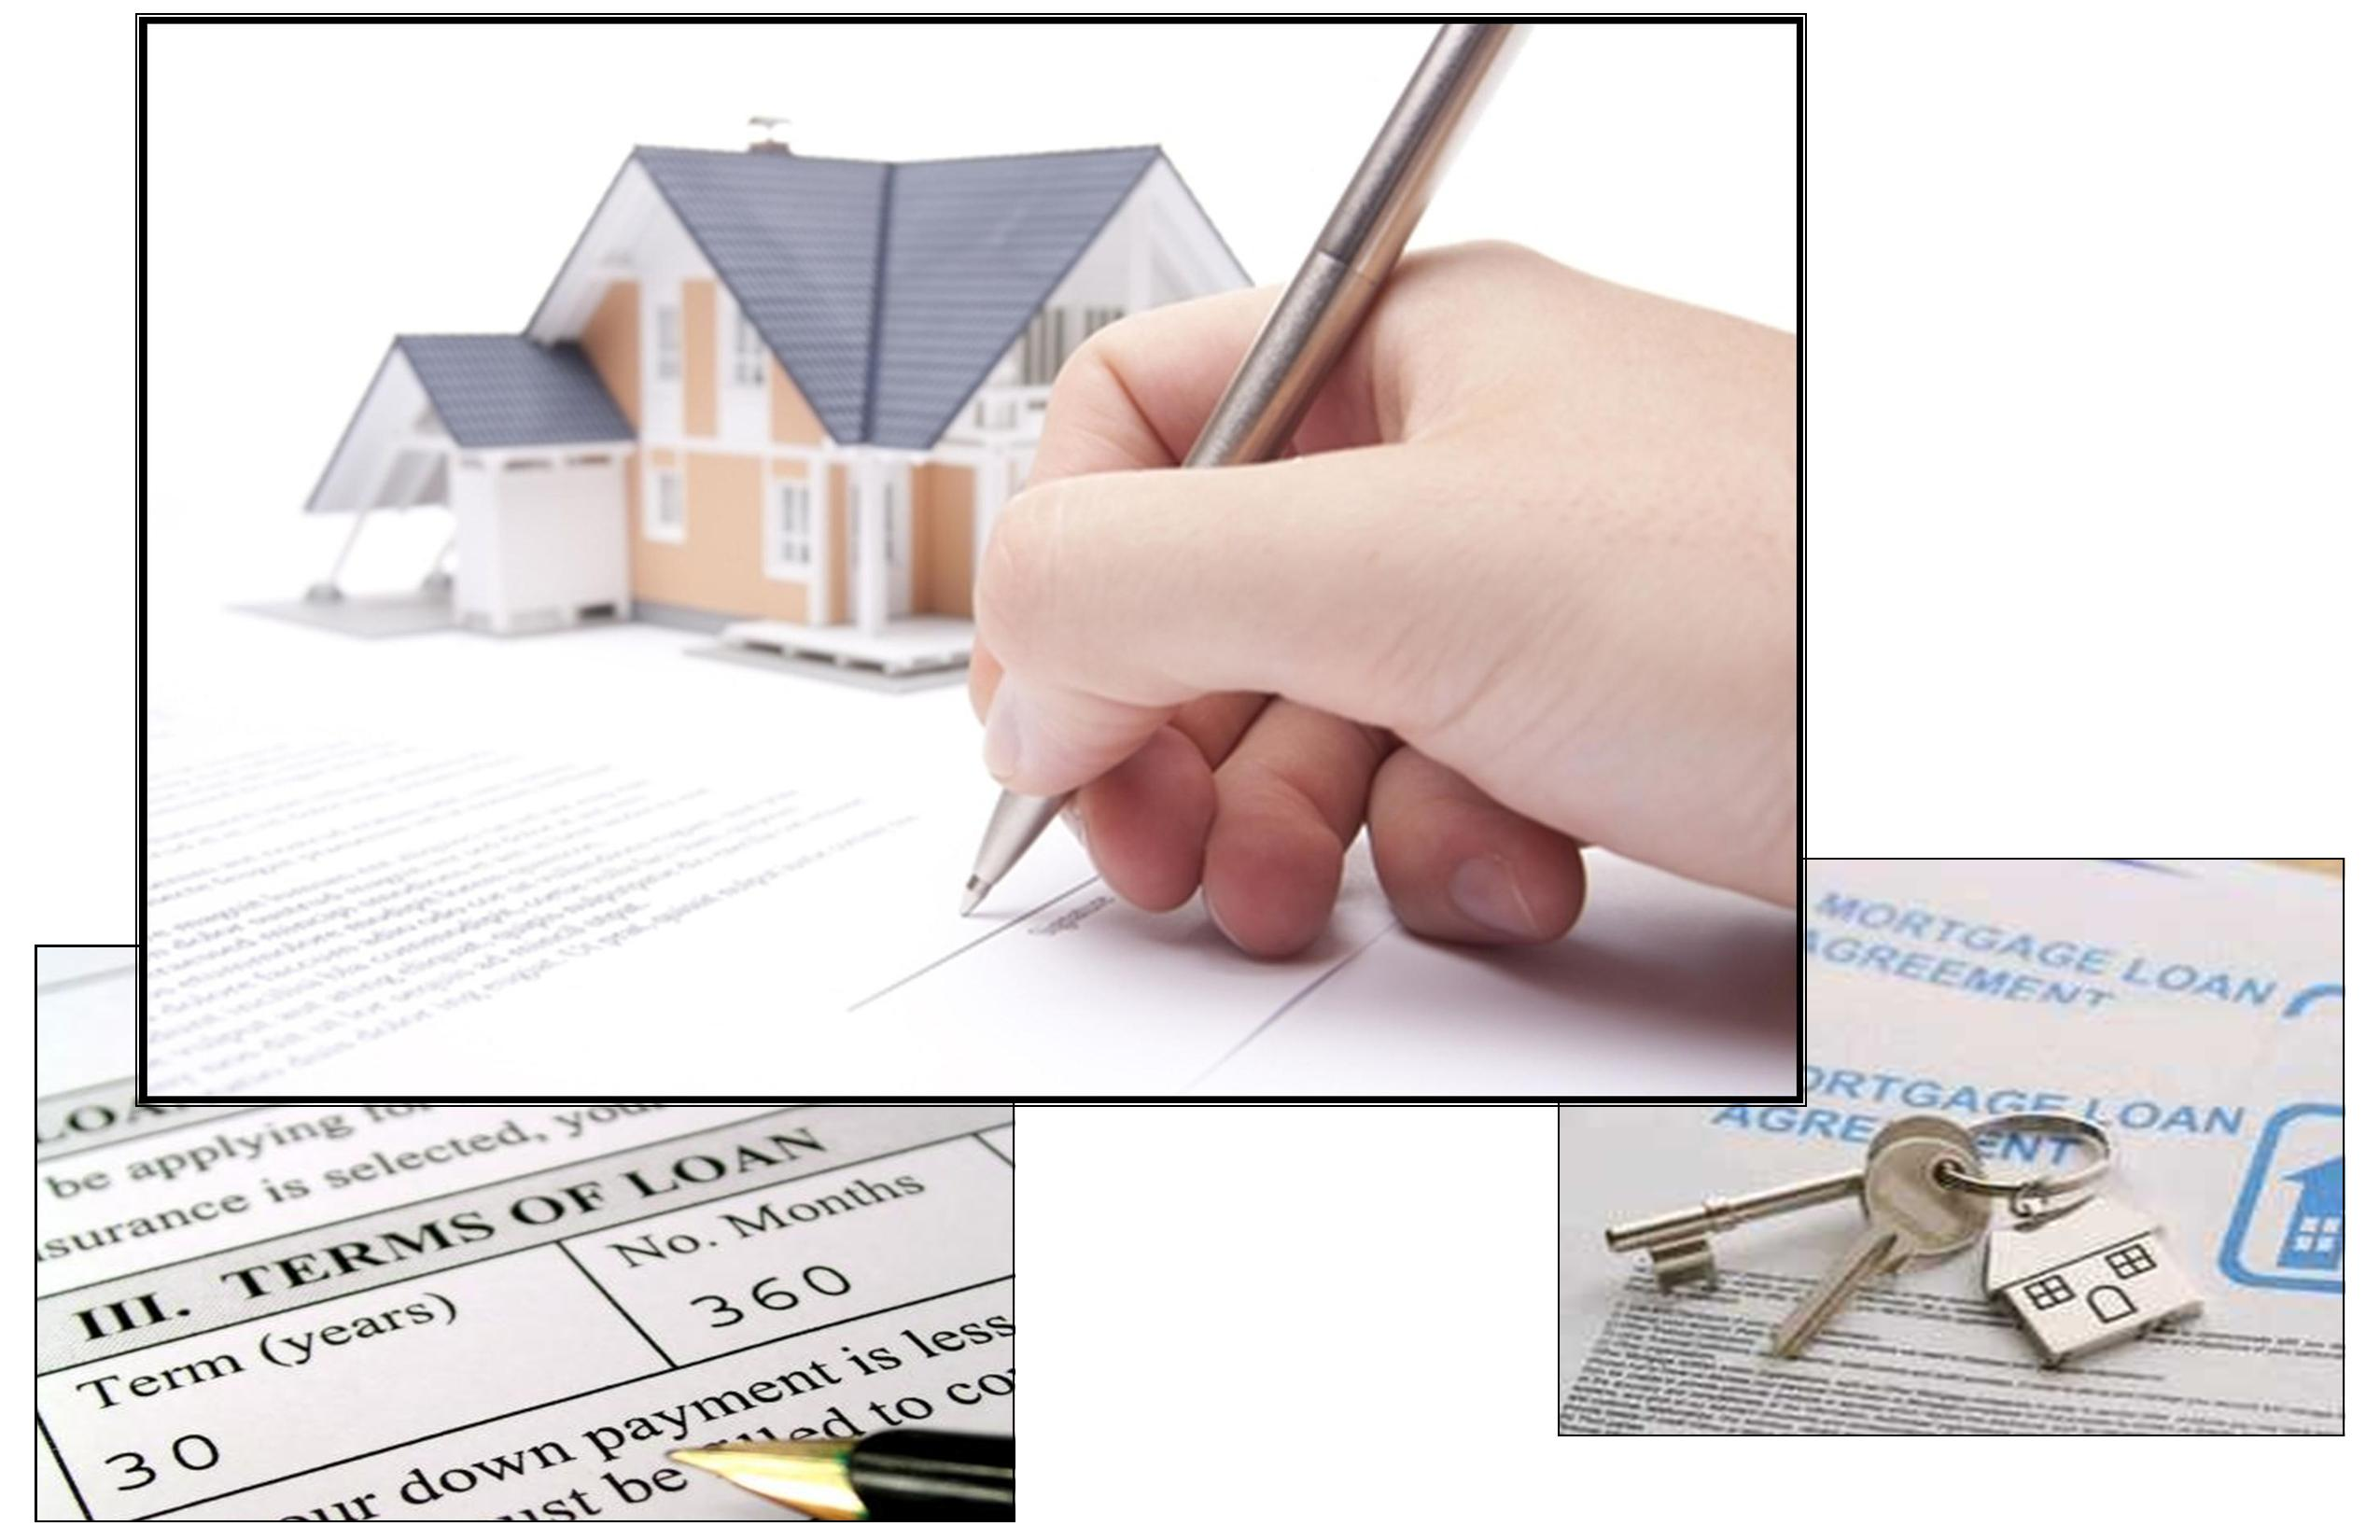 Information on various types of Residential Home Loans